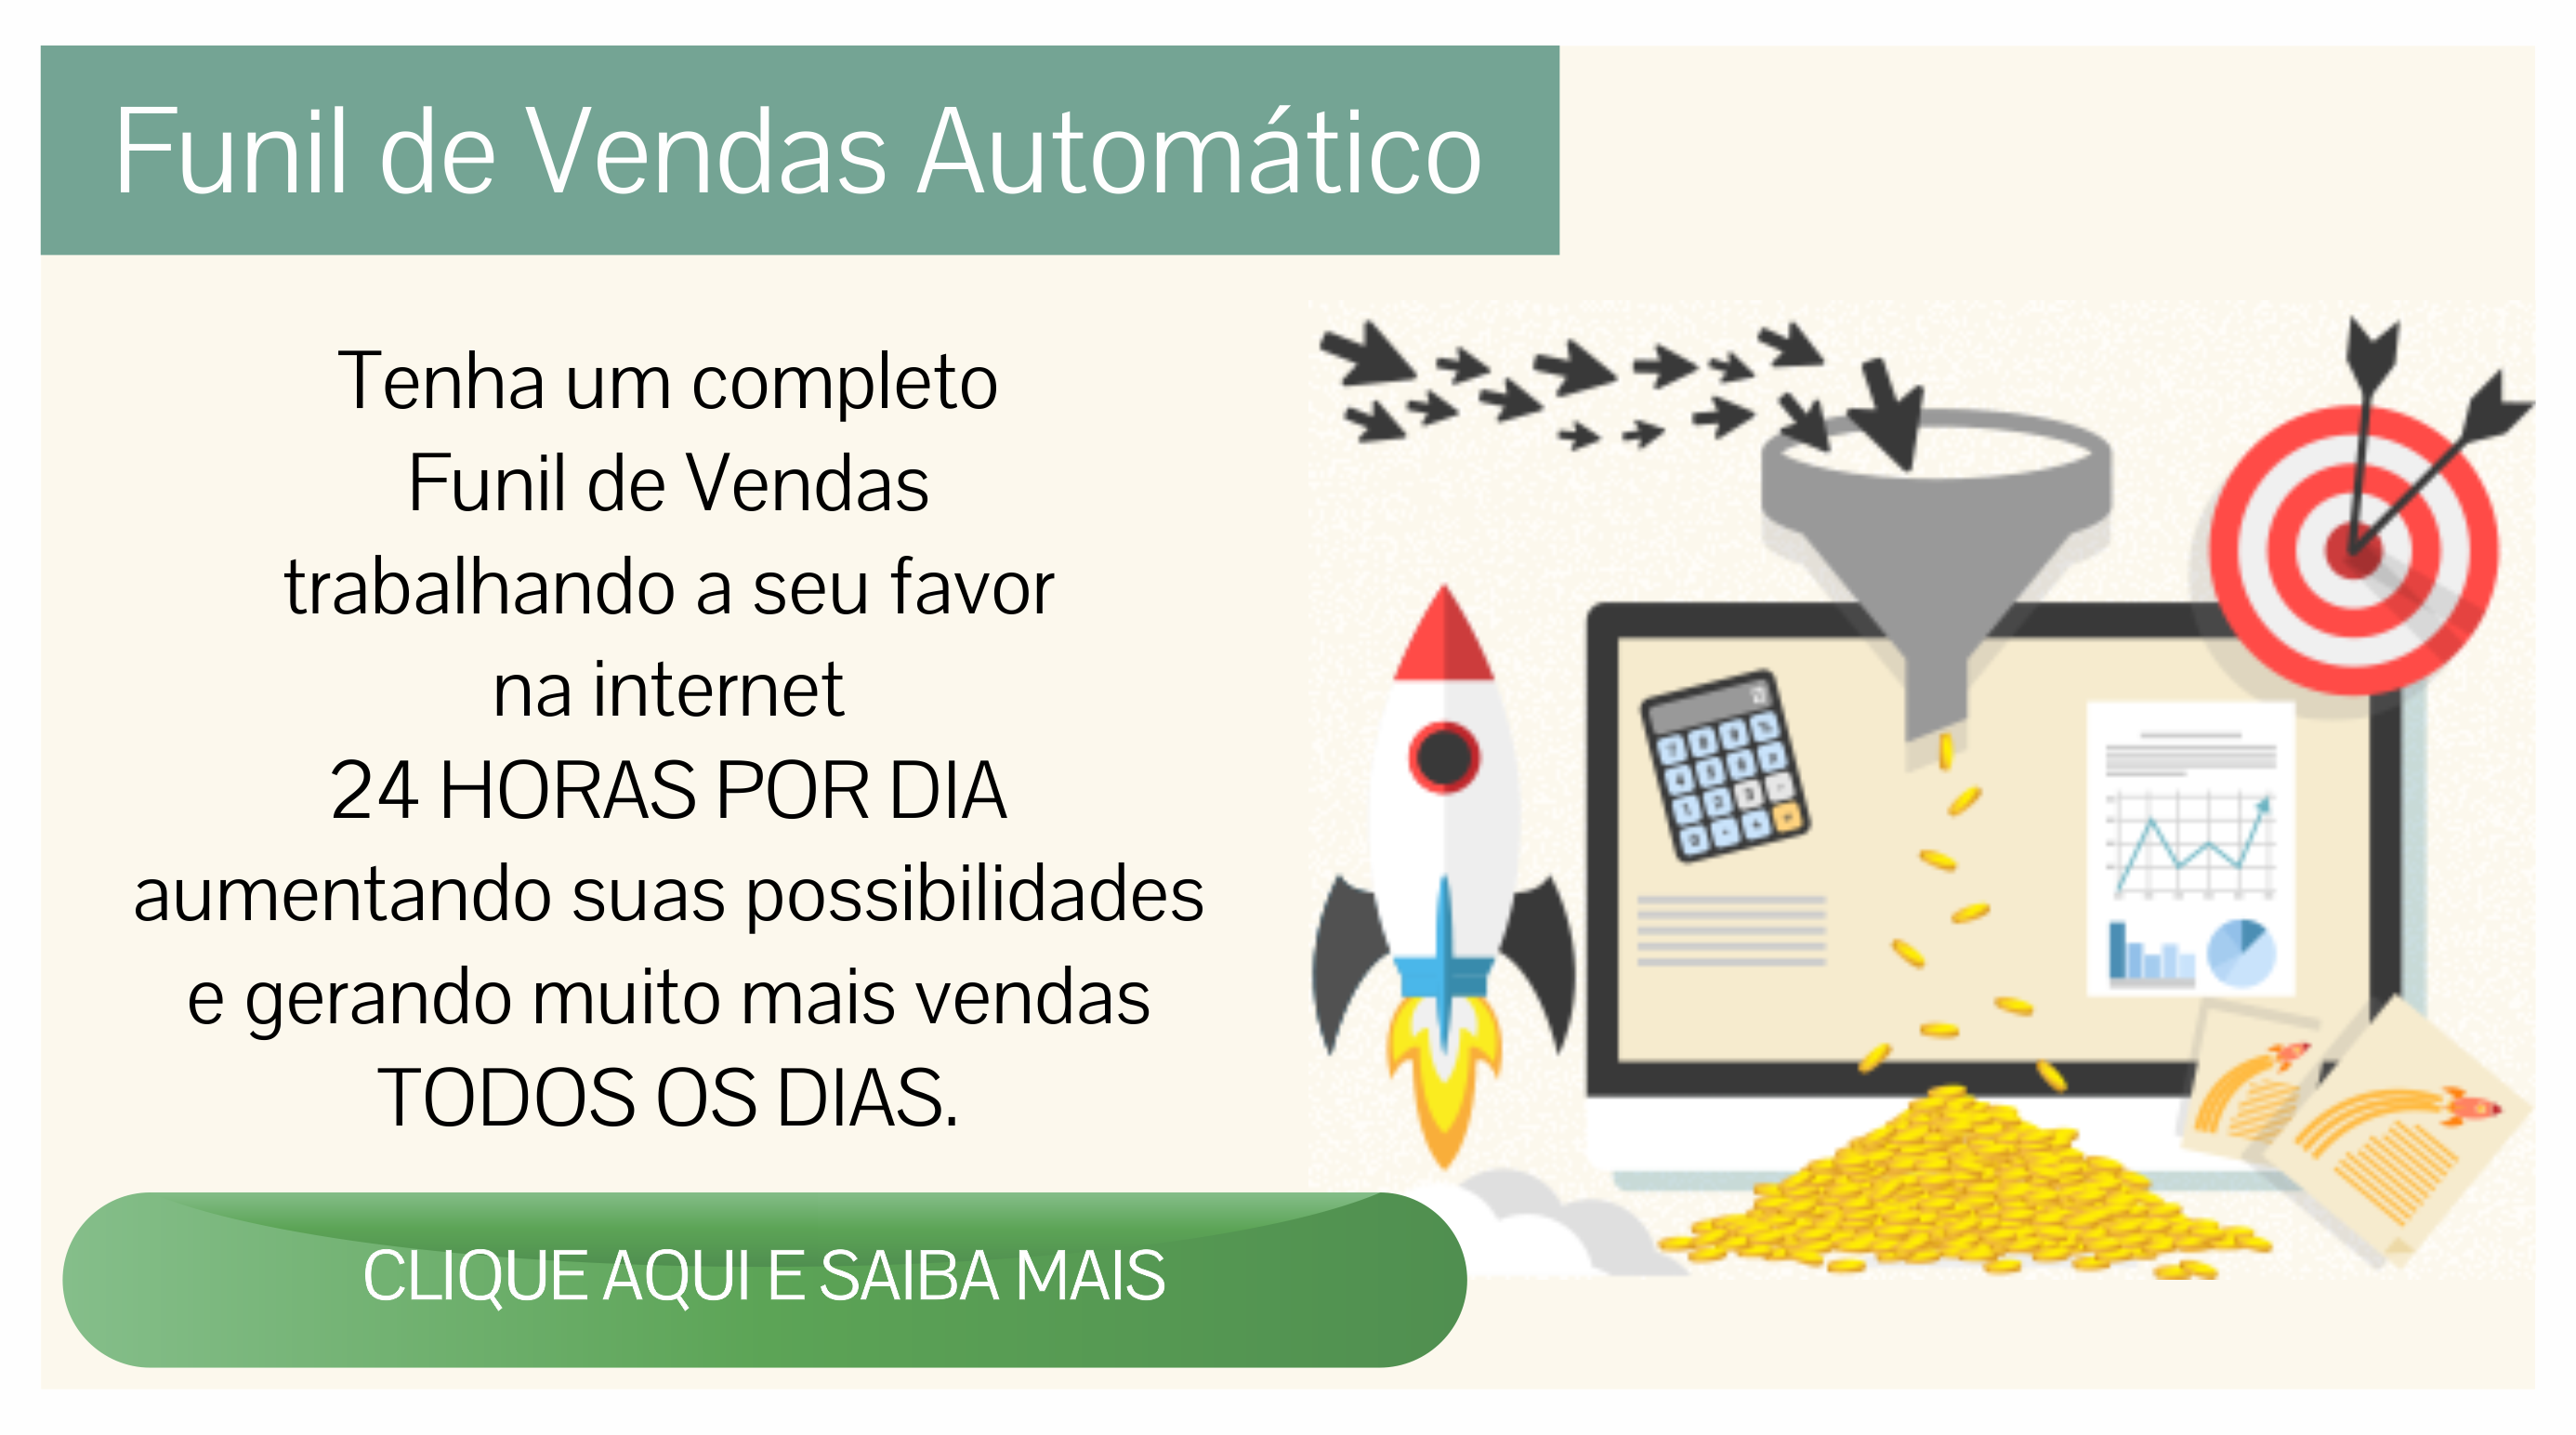 Website Inteligente Funil de Vendas Automático